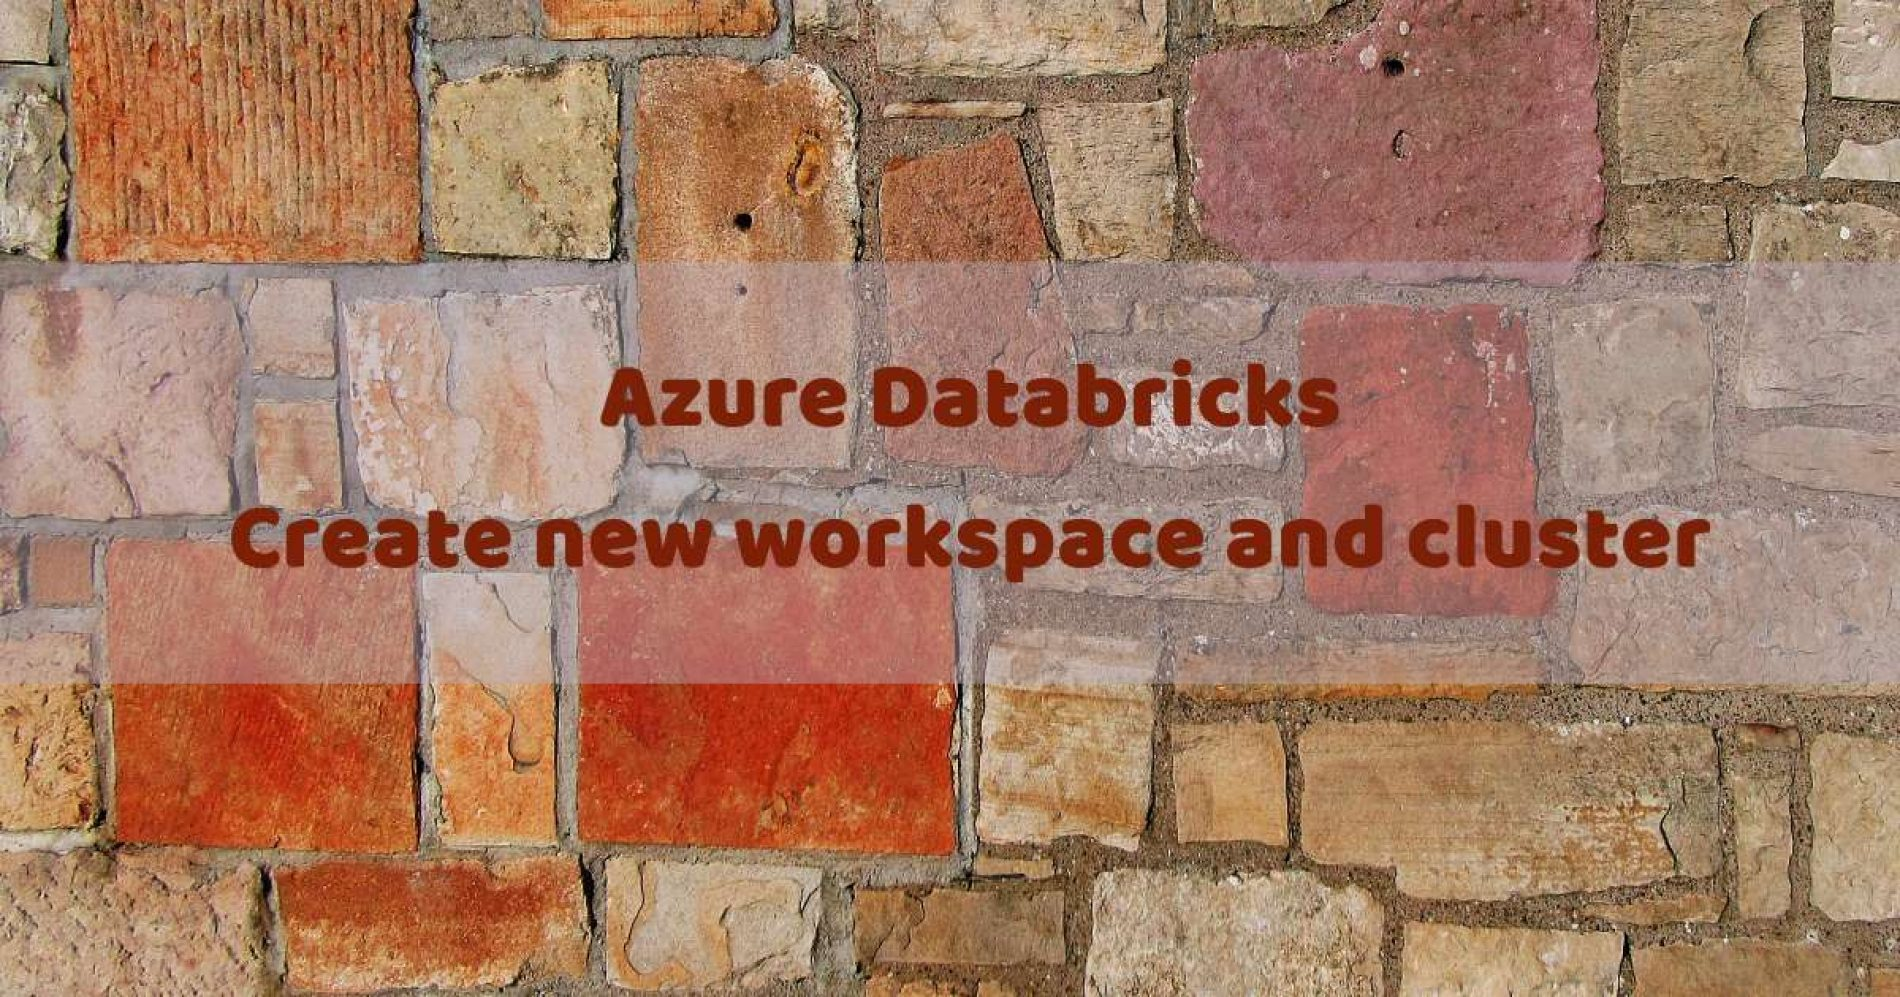 Azure Databricks – create new workspace and cluster